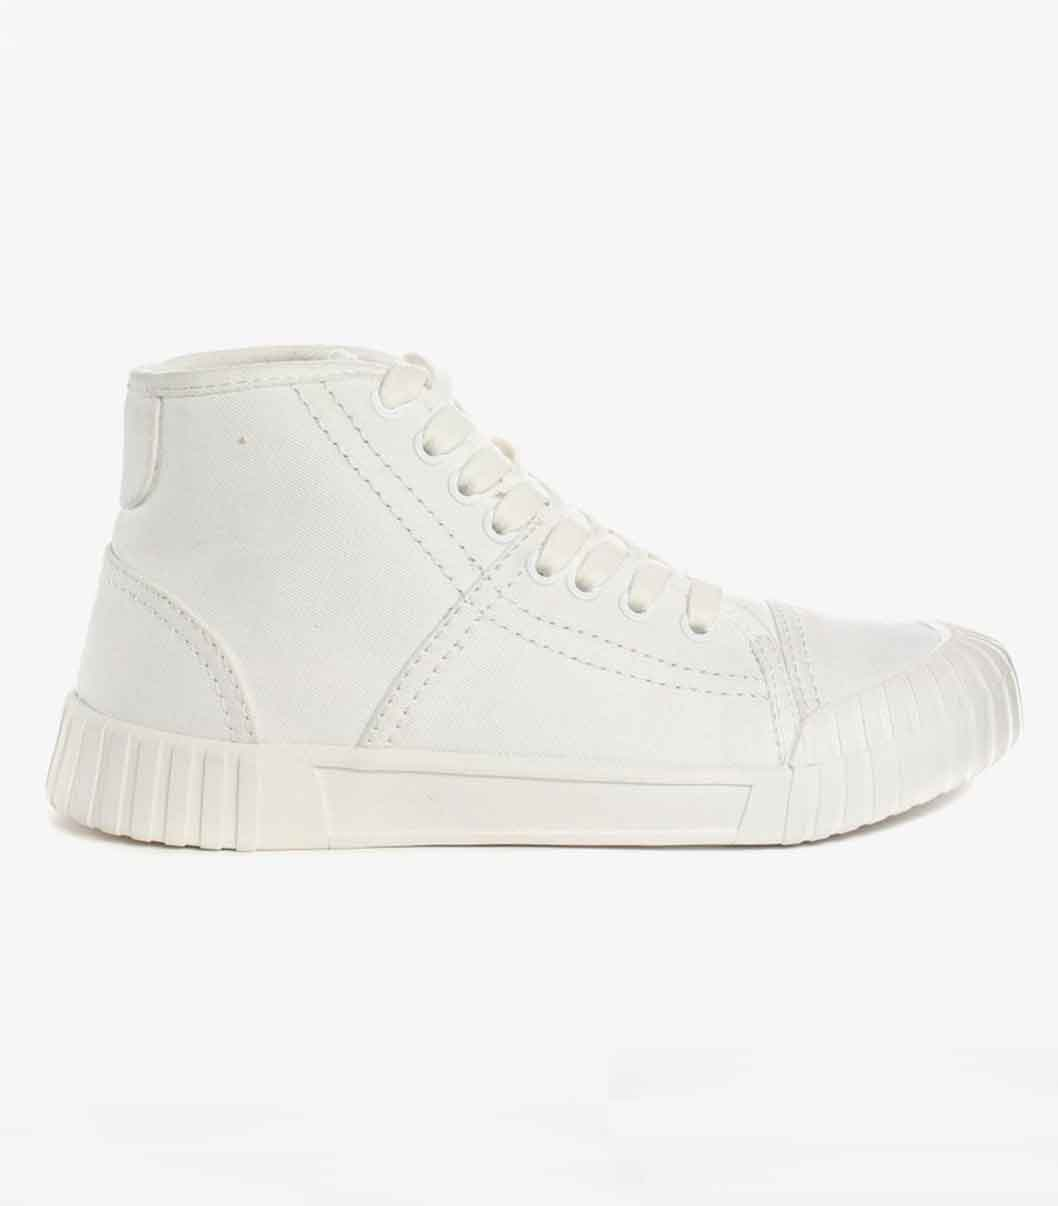 GOOD NEWS LONDON SUSTAINABLE SNEAKER BRAND SLUGGER WHITE HIGH